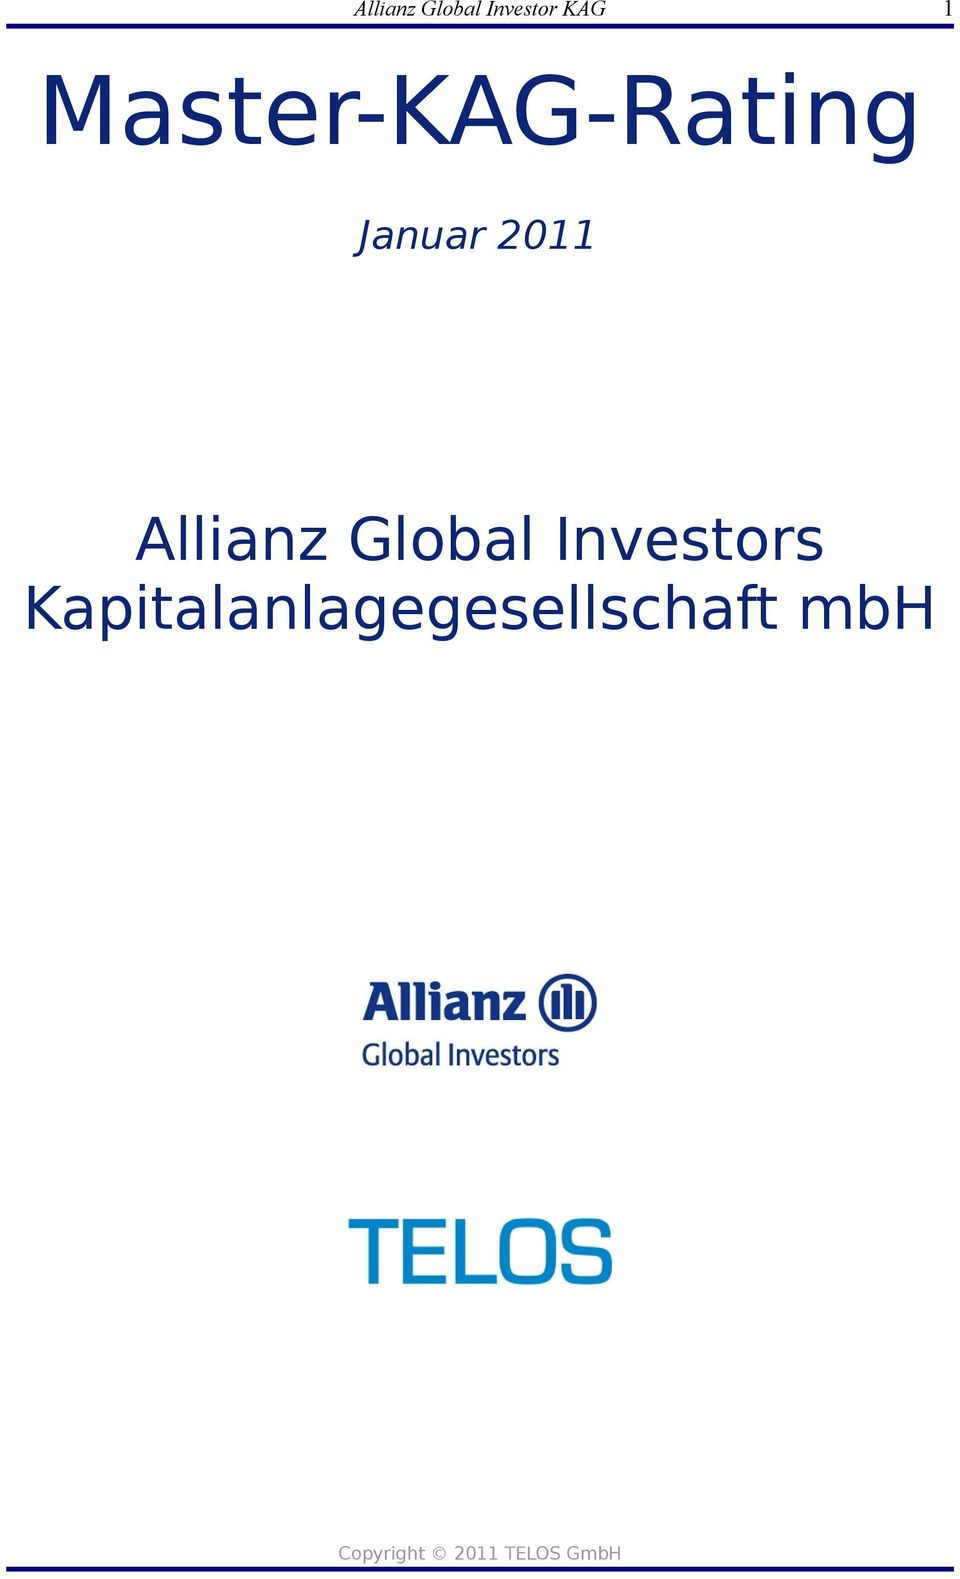 2011 Allianz Global